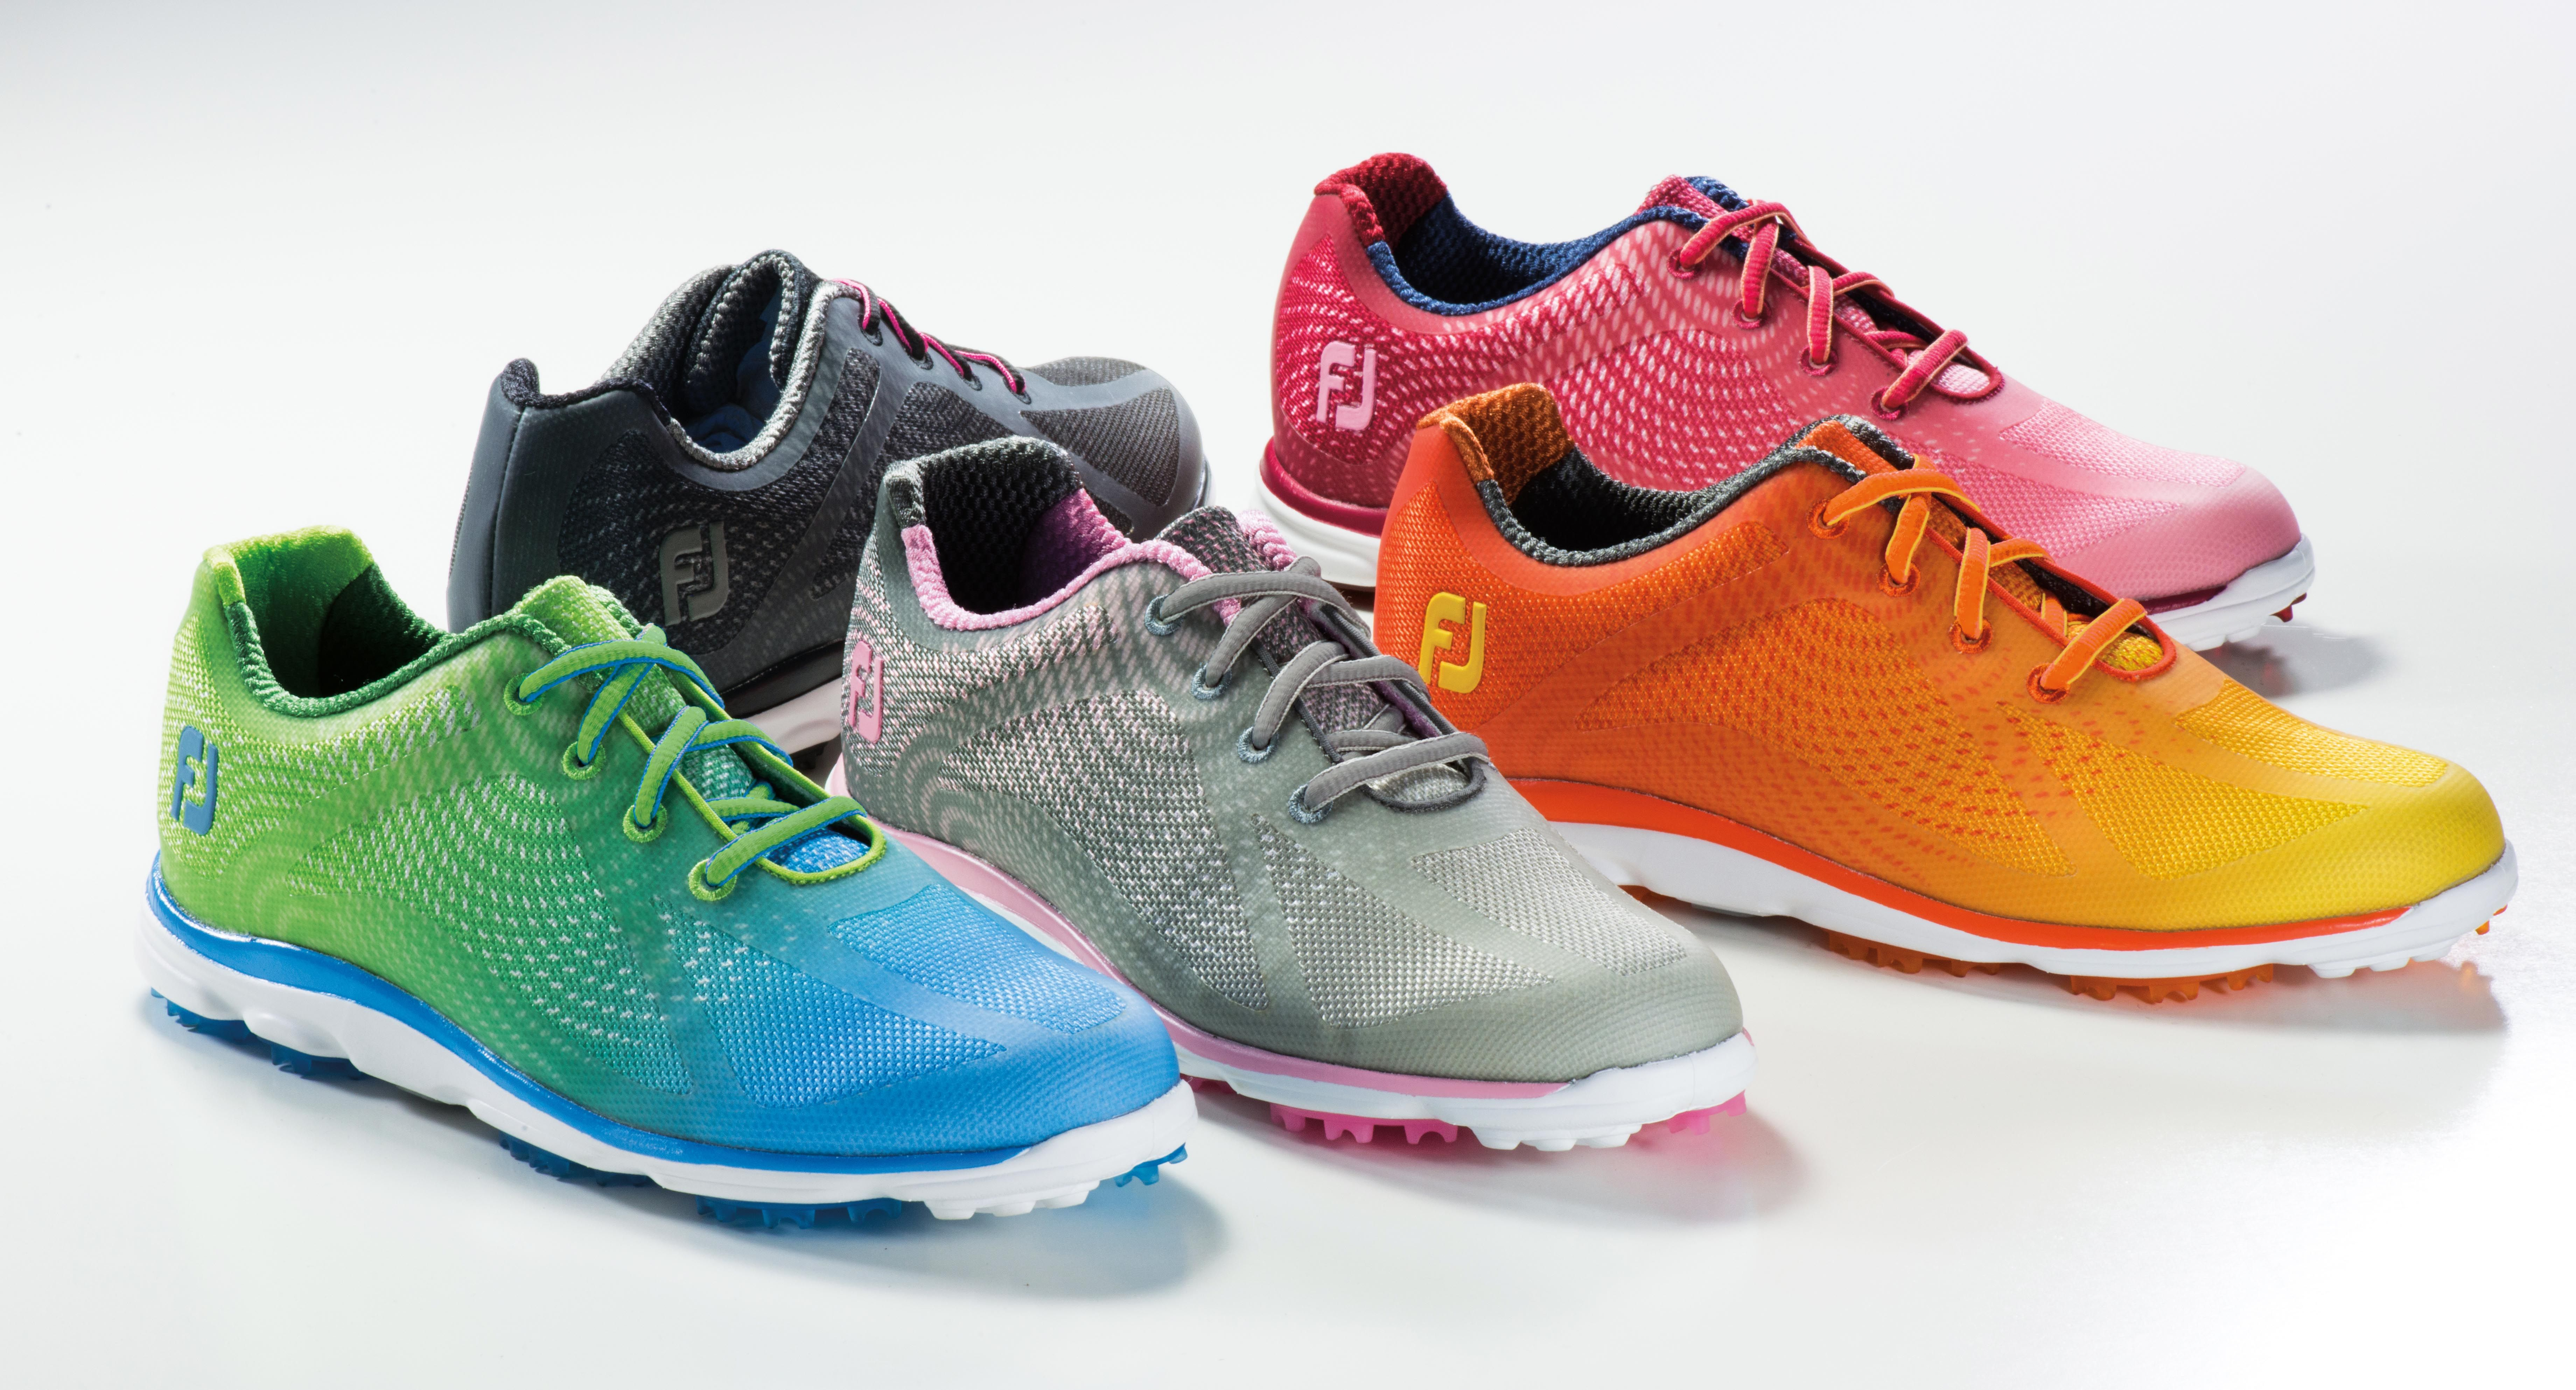 Fj S Empower Women S Shoes Are A Very Colorful And Comfortable Shoe For Anyone Golf Shoes Footjoy Womens Golf Shoes